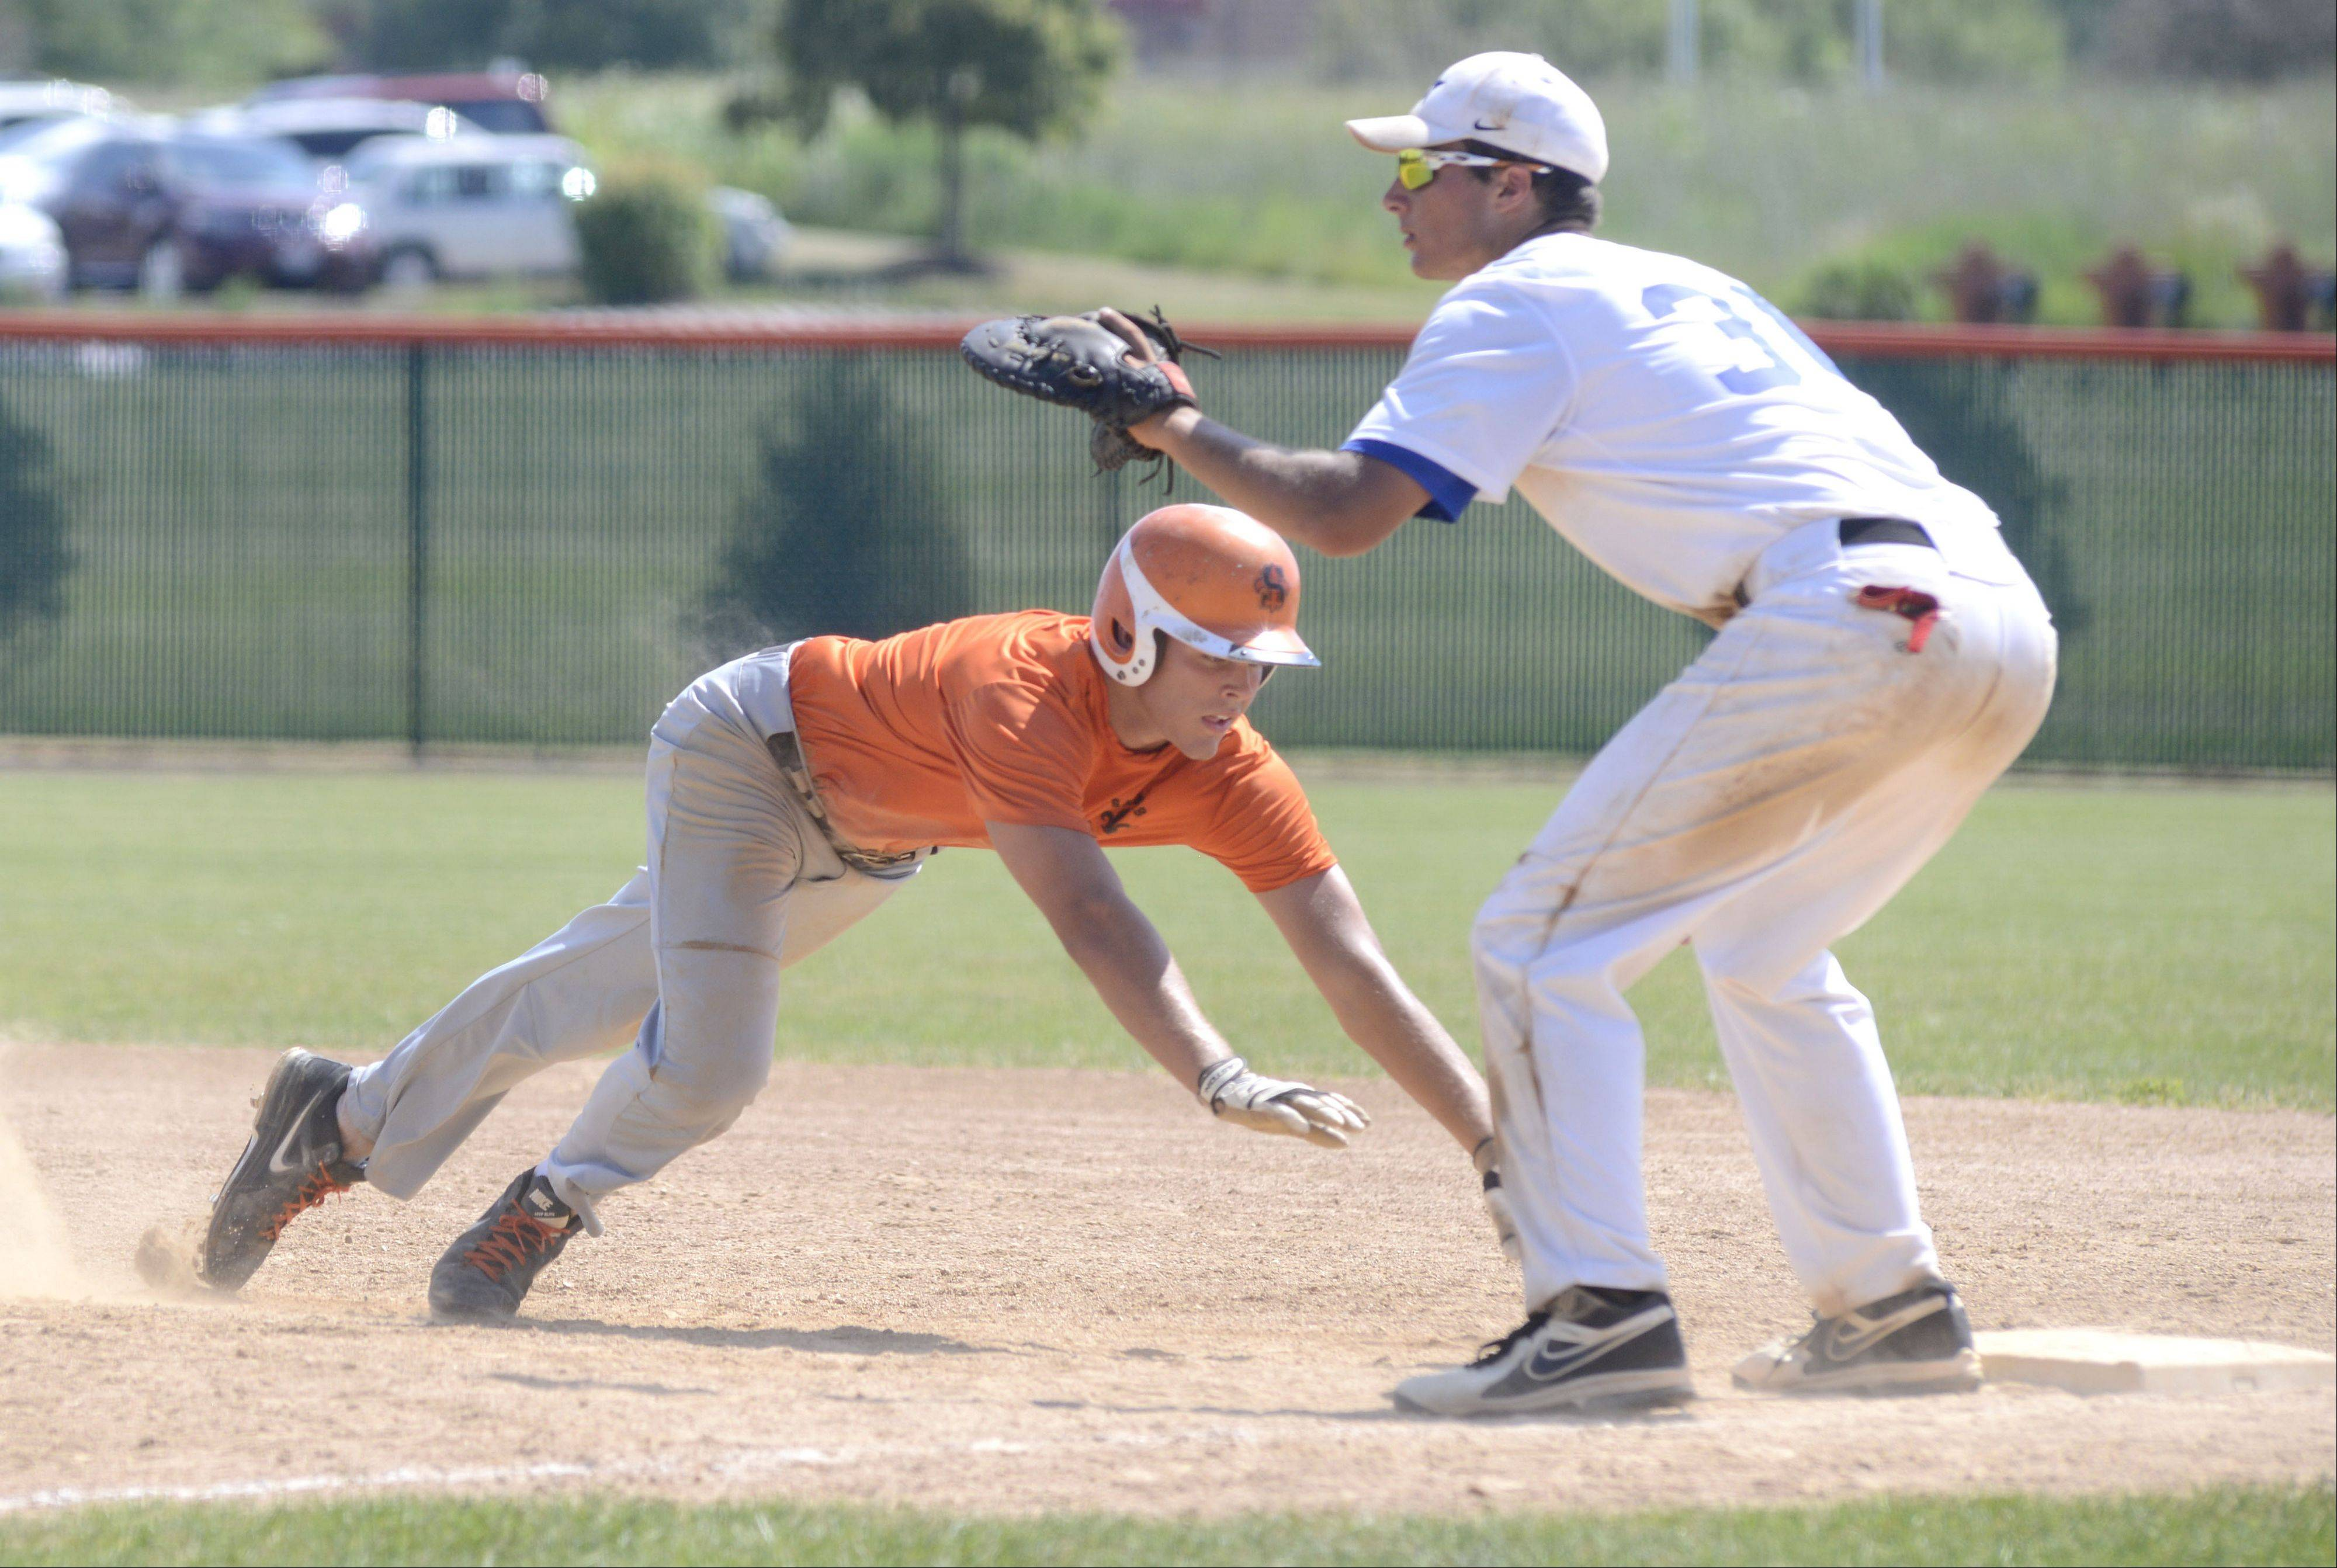 St. Charles East�s Erik Anderson dives back safely to first base before St. Charles North�s Joe Kuczek can tag him out in the fourth inning of the St. Charles East summer tournament semifinals on Wednesday, July 17.